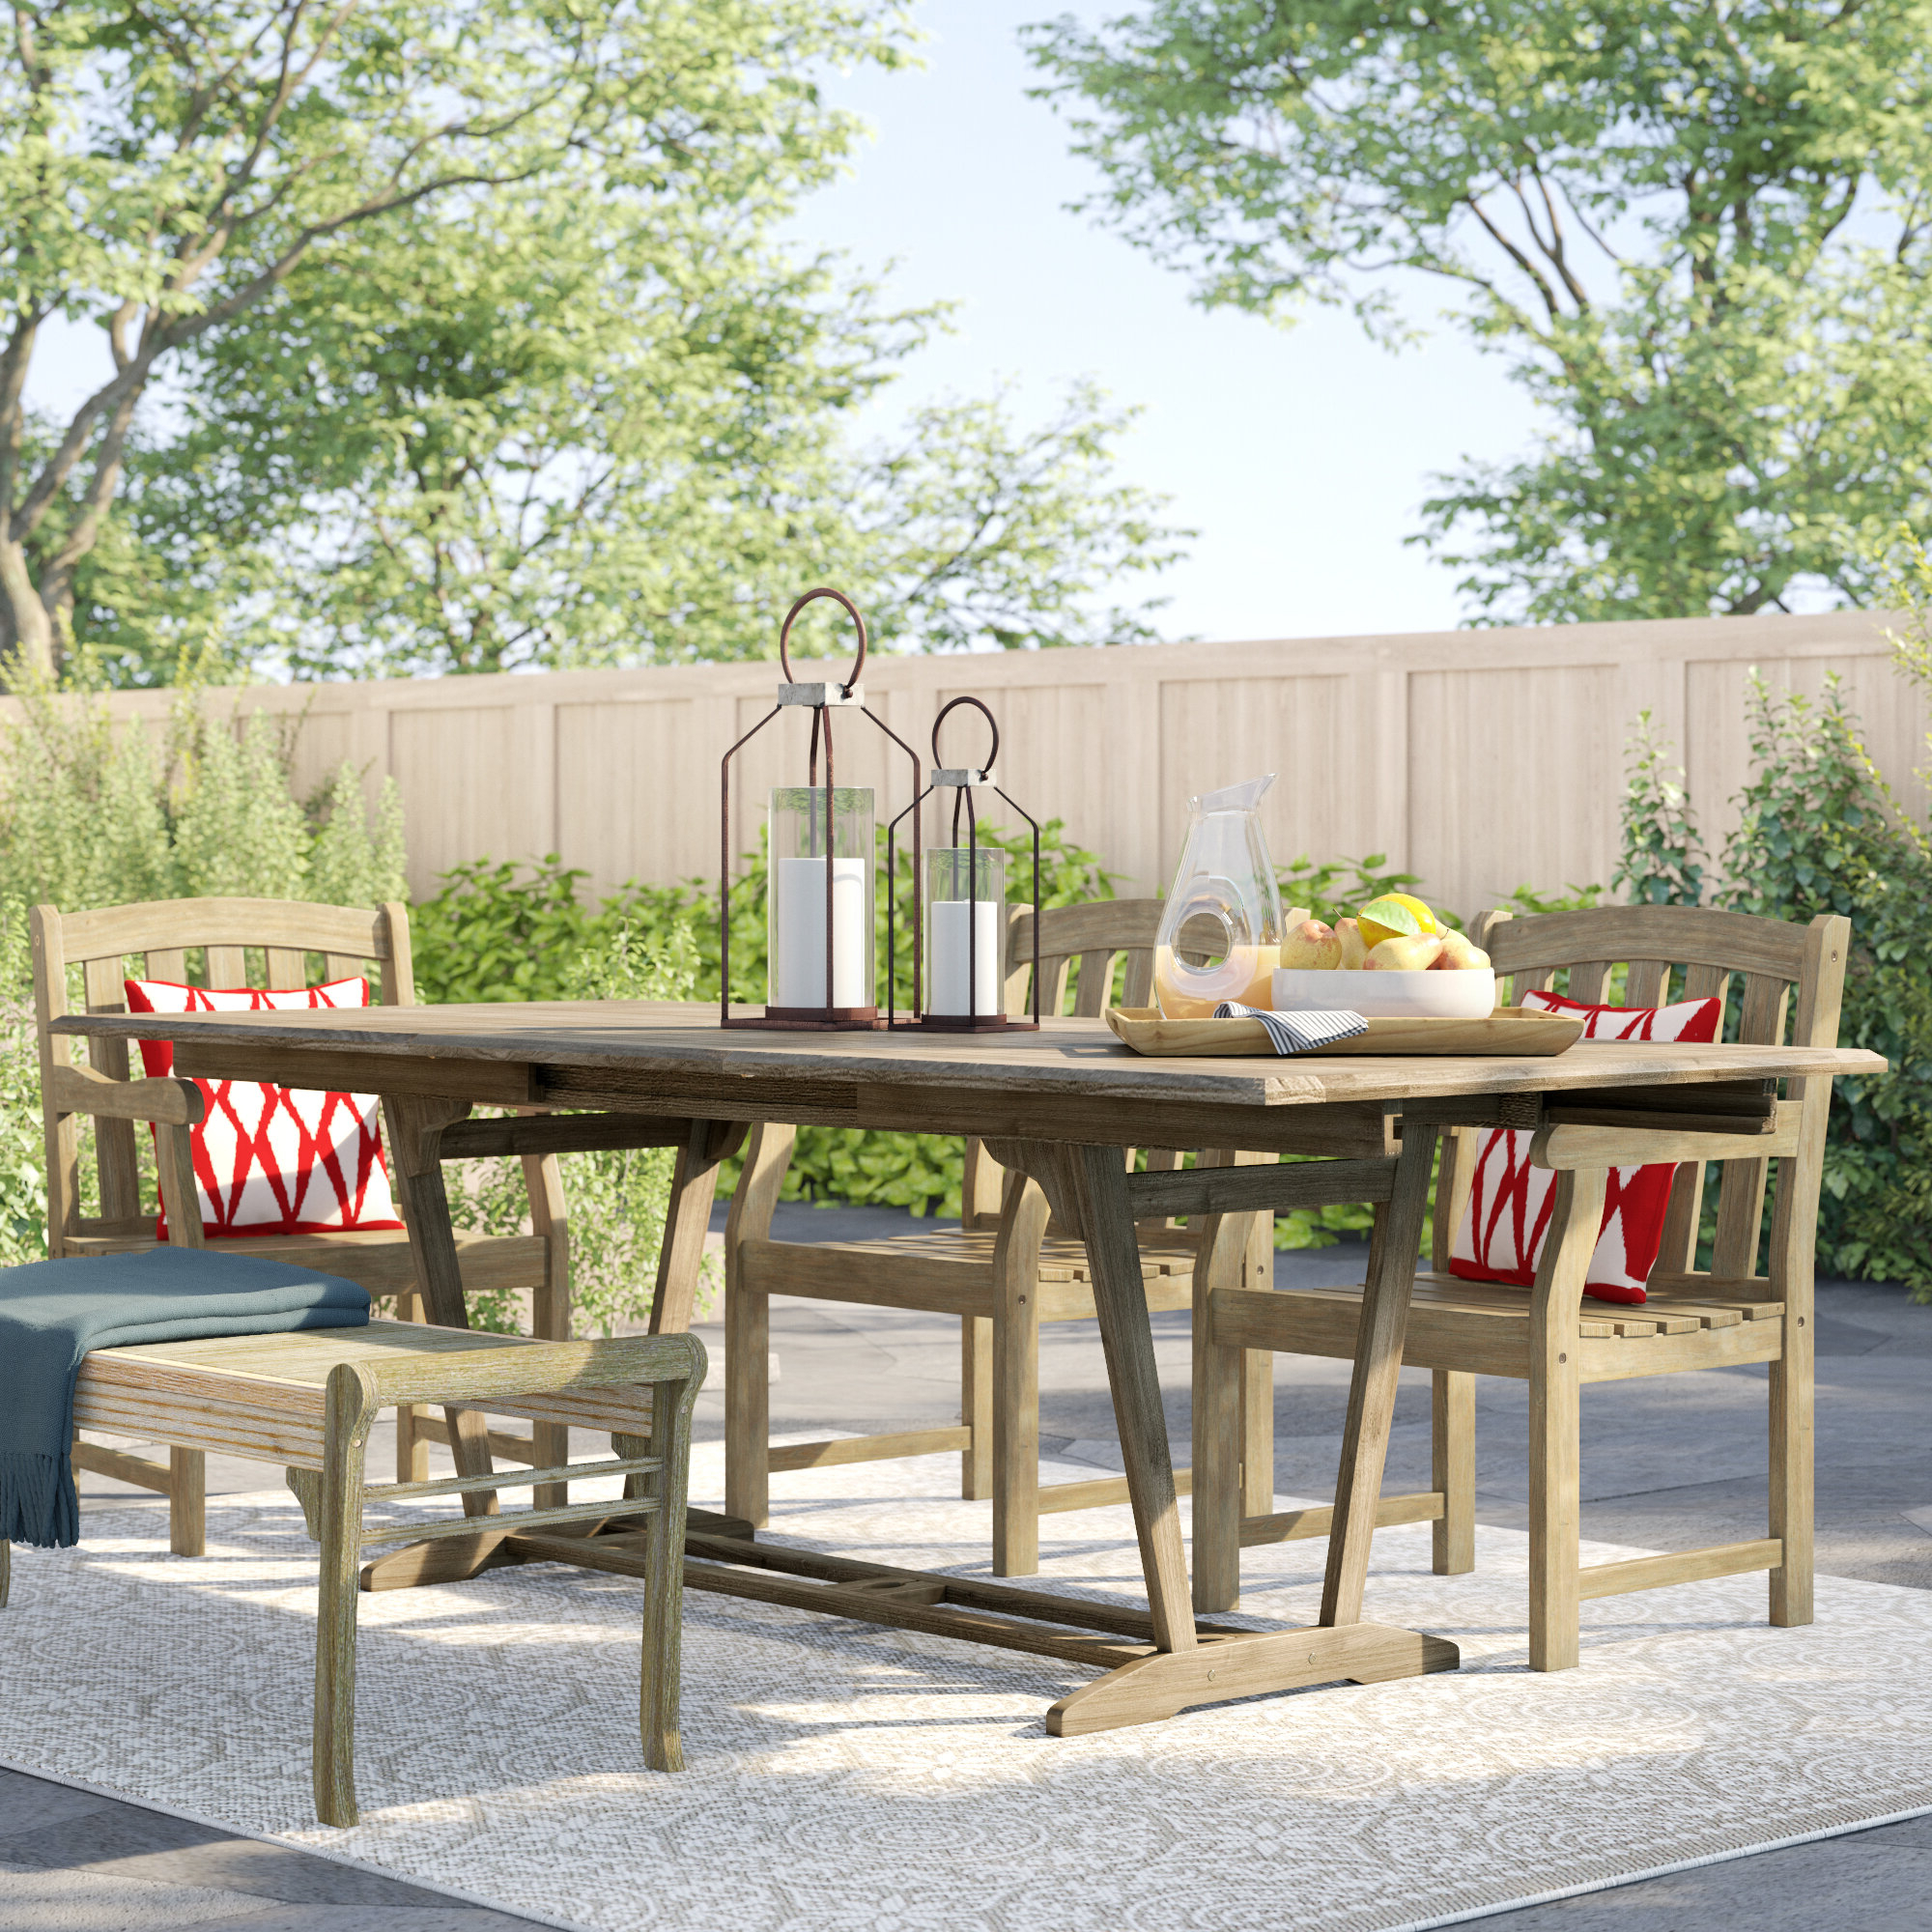 Shelbie Wooden Garden Benches With Fashionable Shelbie Extendable Wooden Dining Table (View 15 of 30)